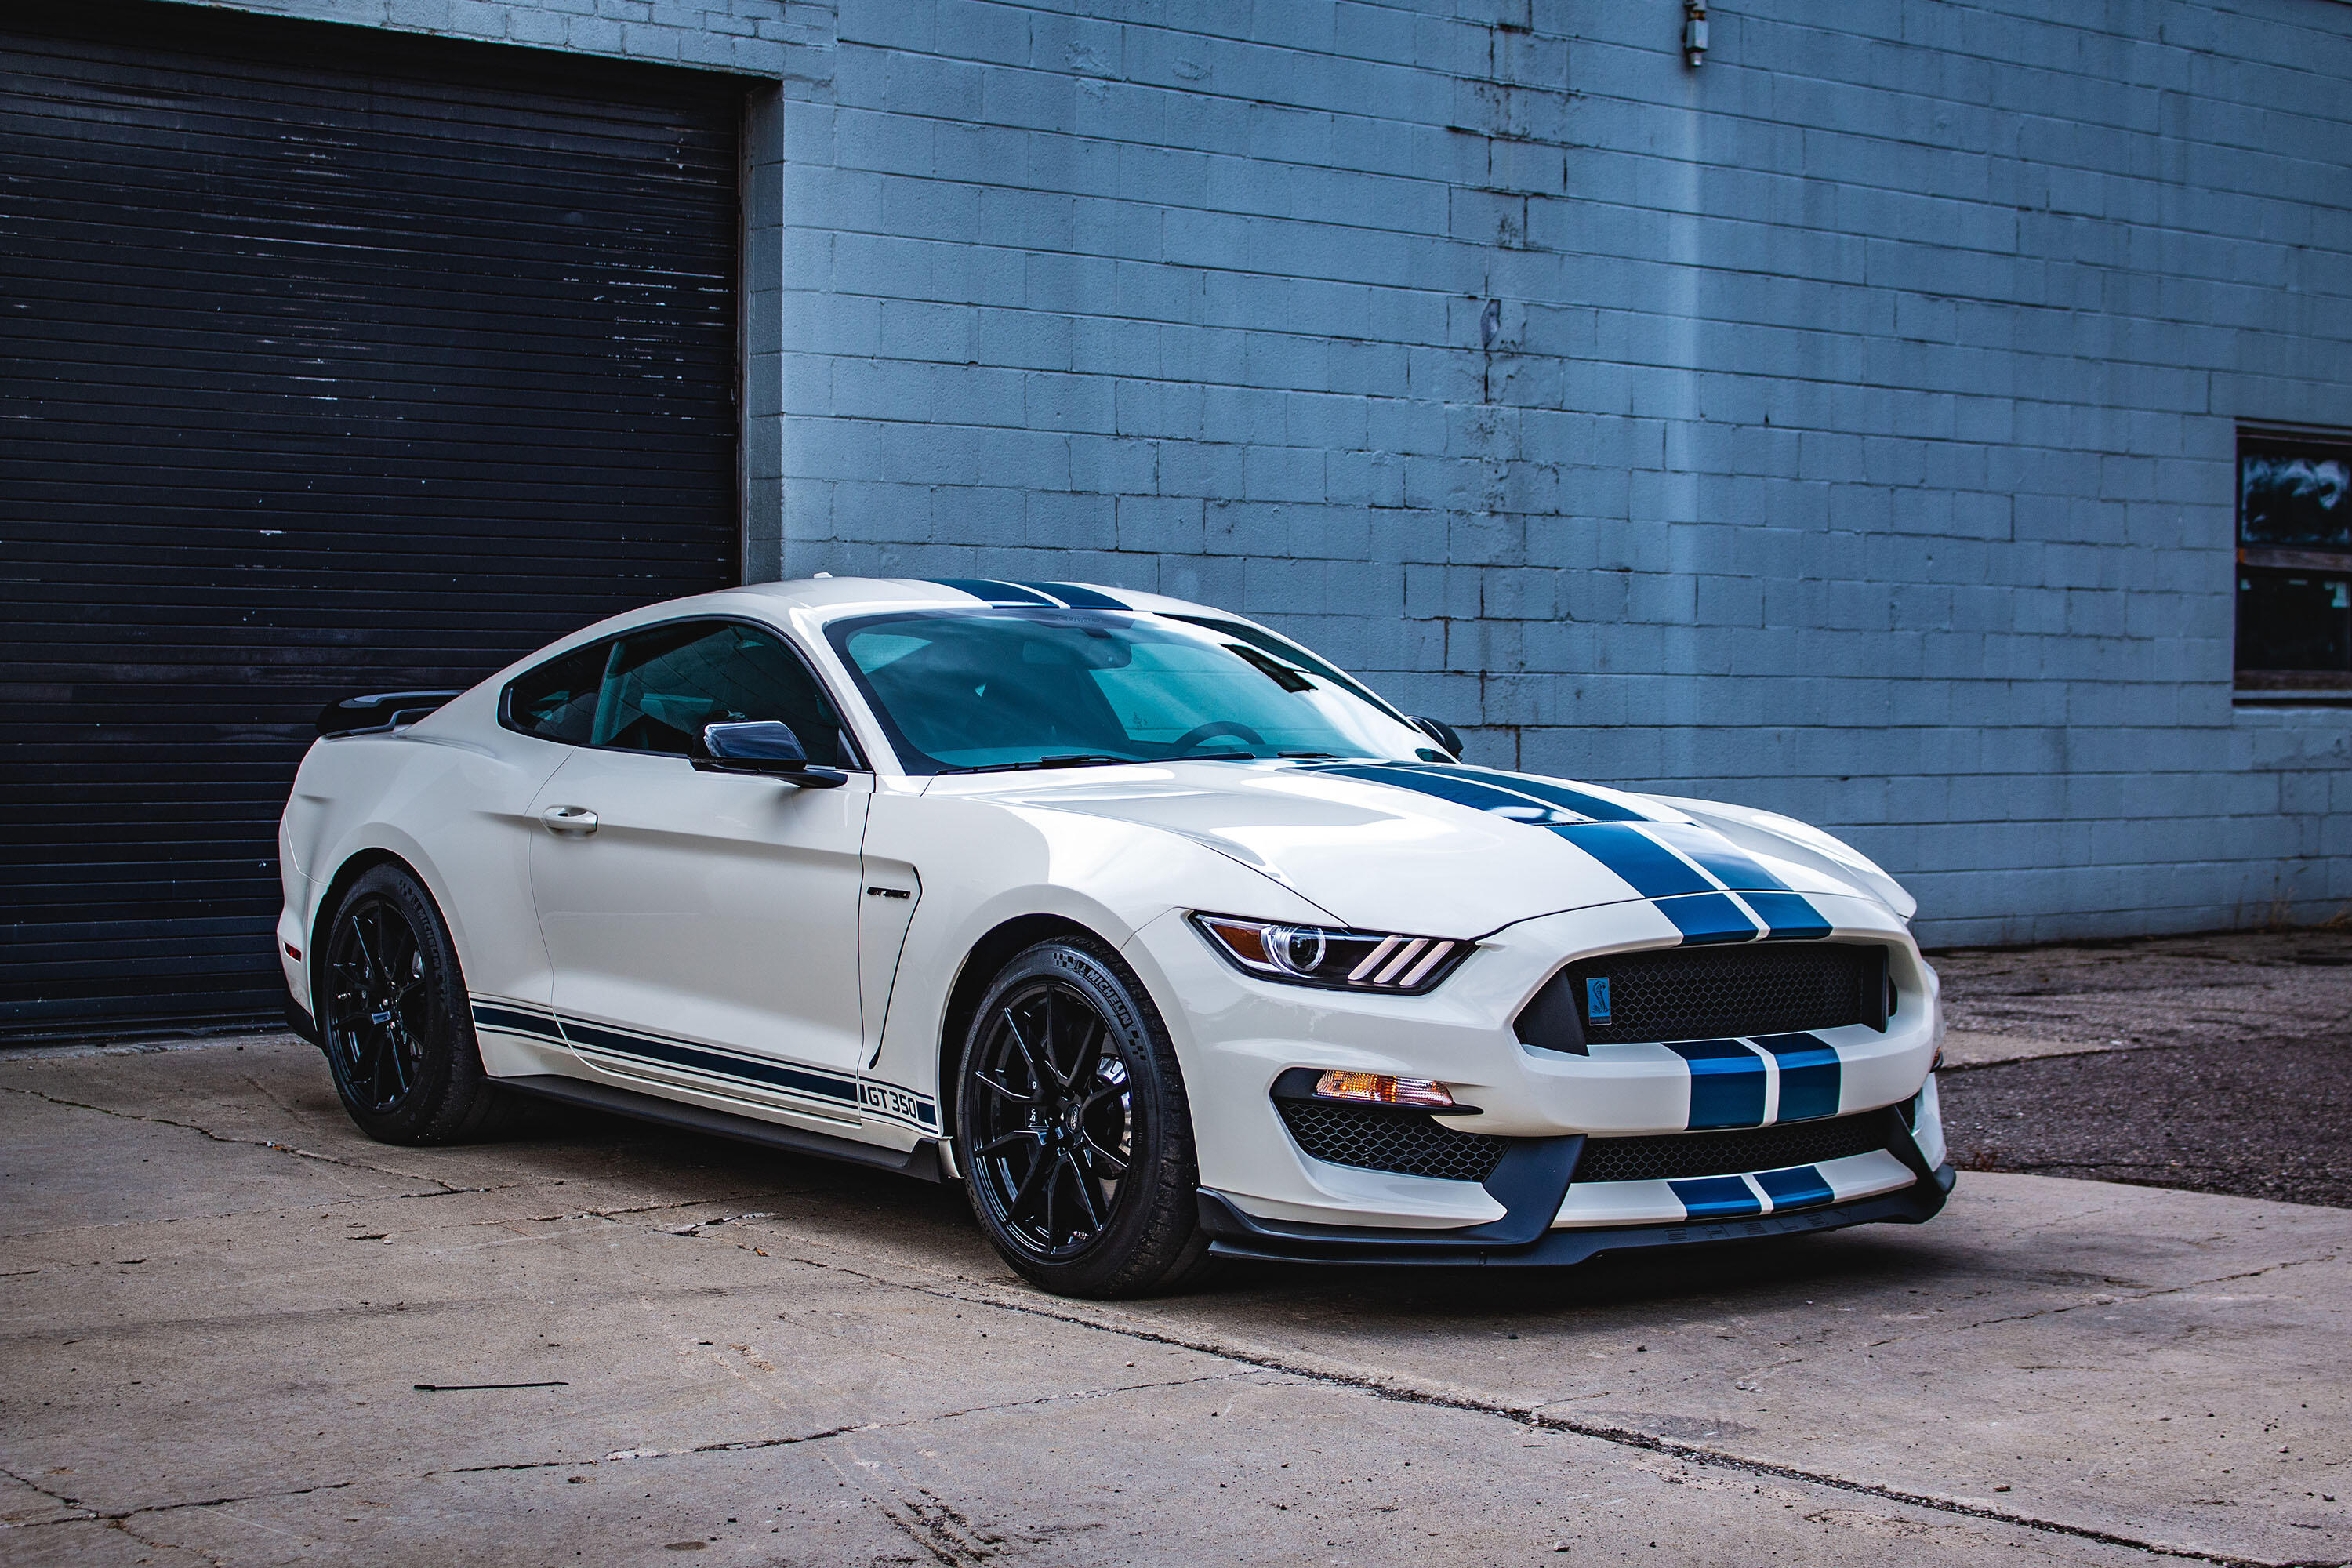 2020-ford-mustang-shelby-gt350-heritage-edition-10